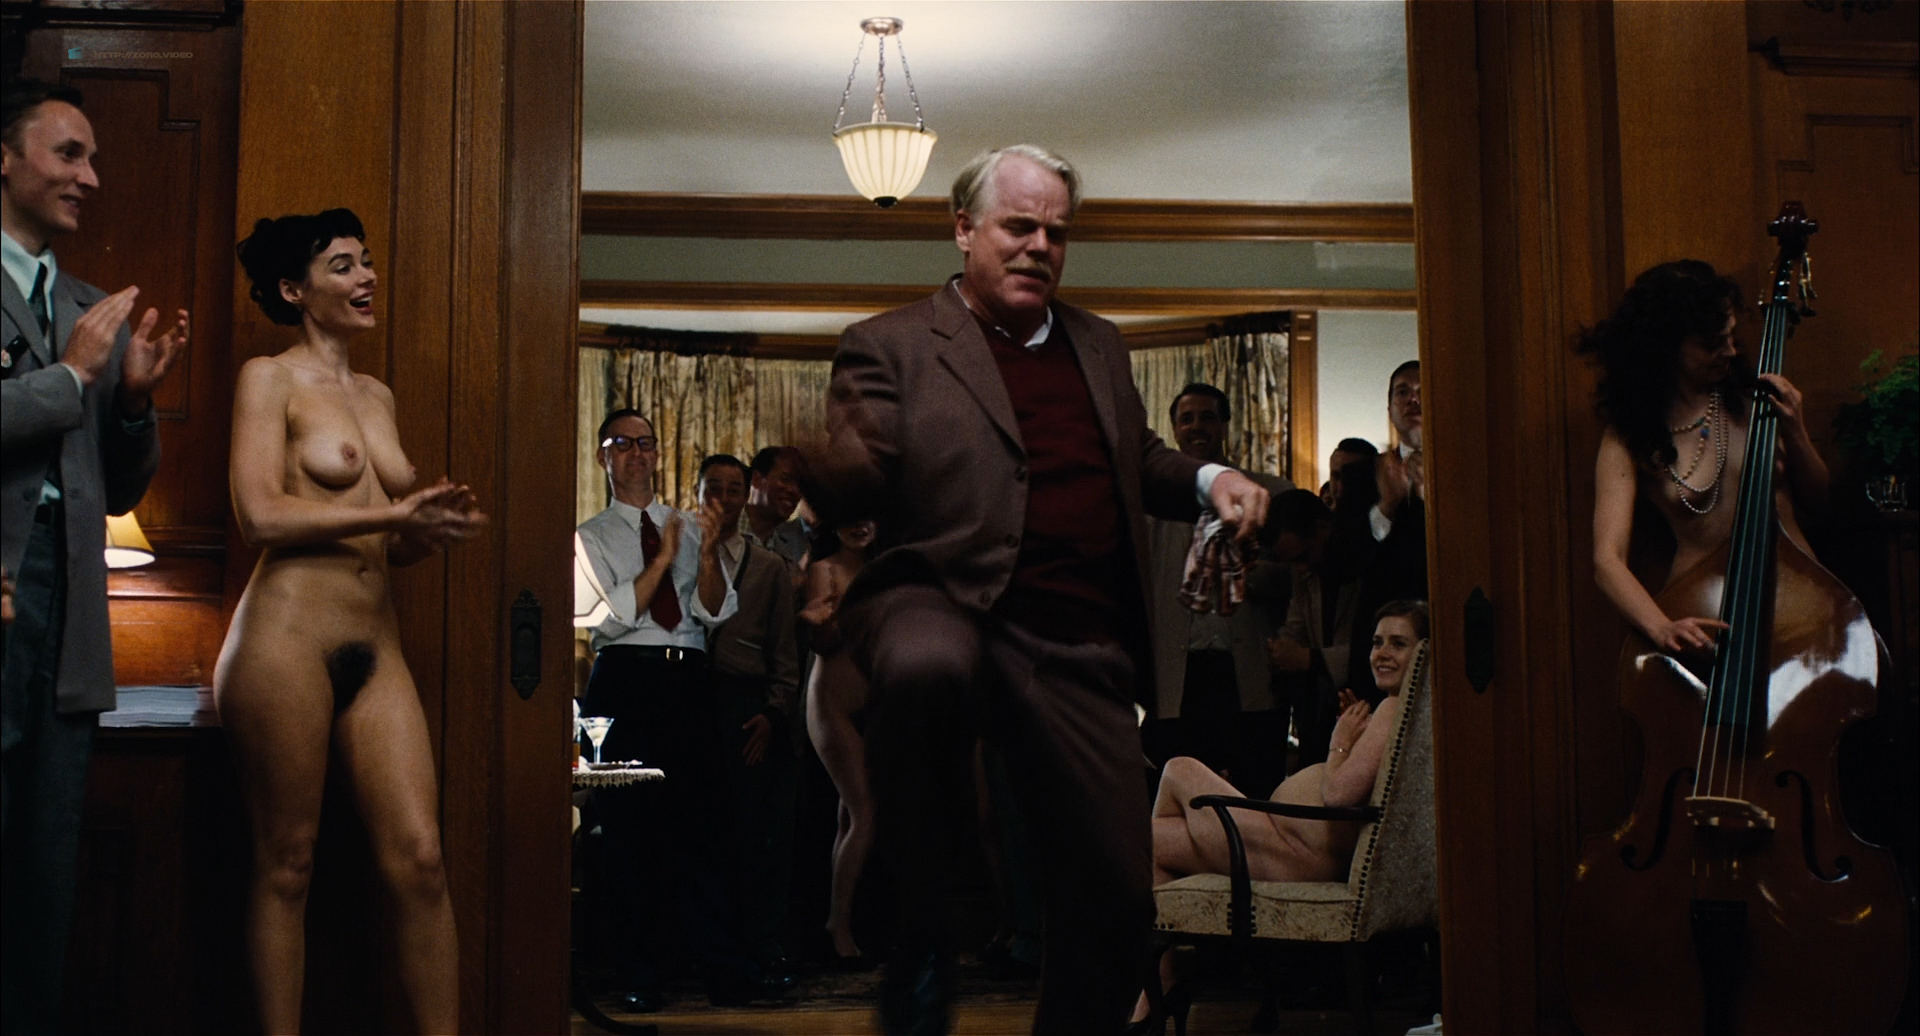 Amy Ferguson nude topless, Liz Clare, Katie Boland nude dancing Amy Adams nude covered and Jennifer Neala Page nude sex - The Master (2012) HD 1080p BluRay (15)